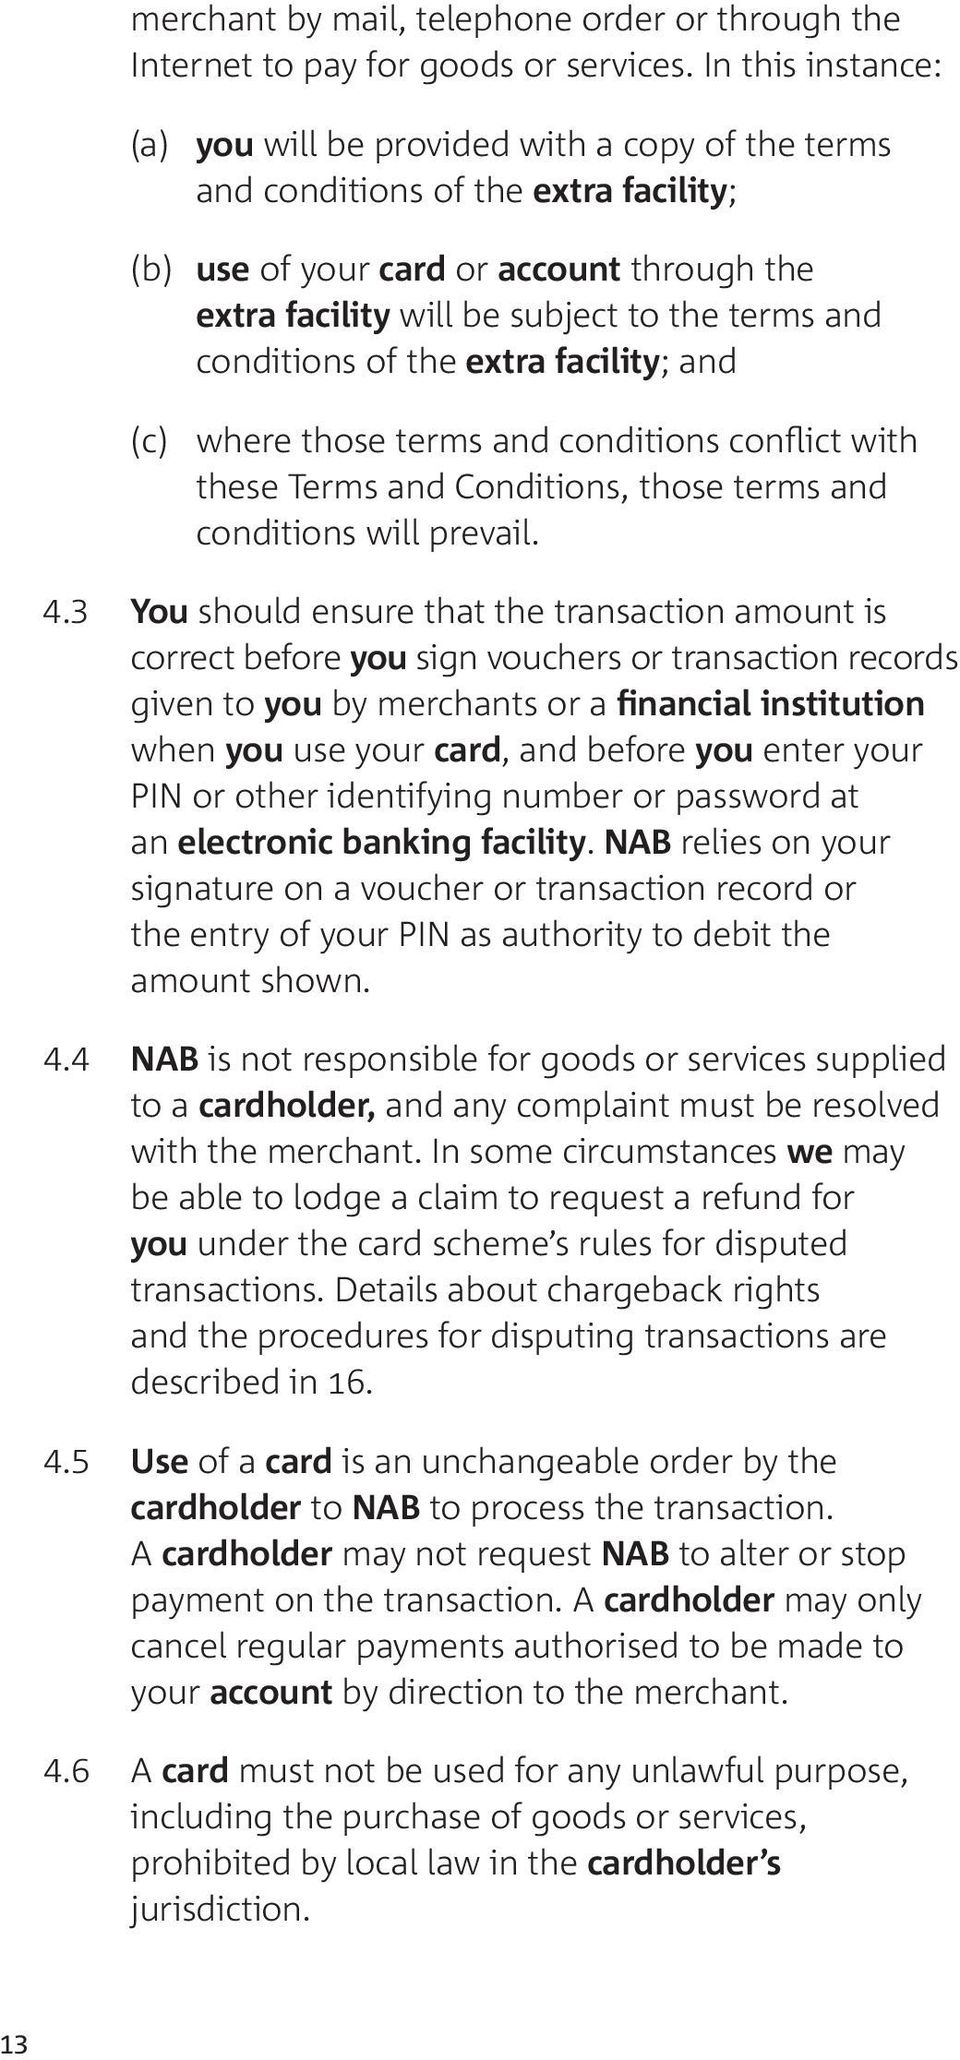 how to pay anz credit card from nab